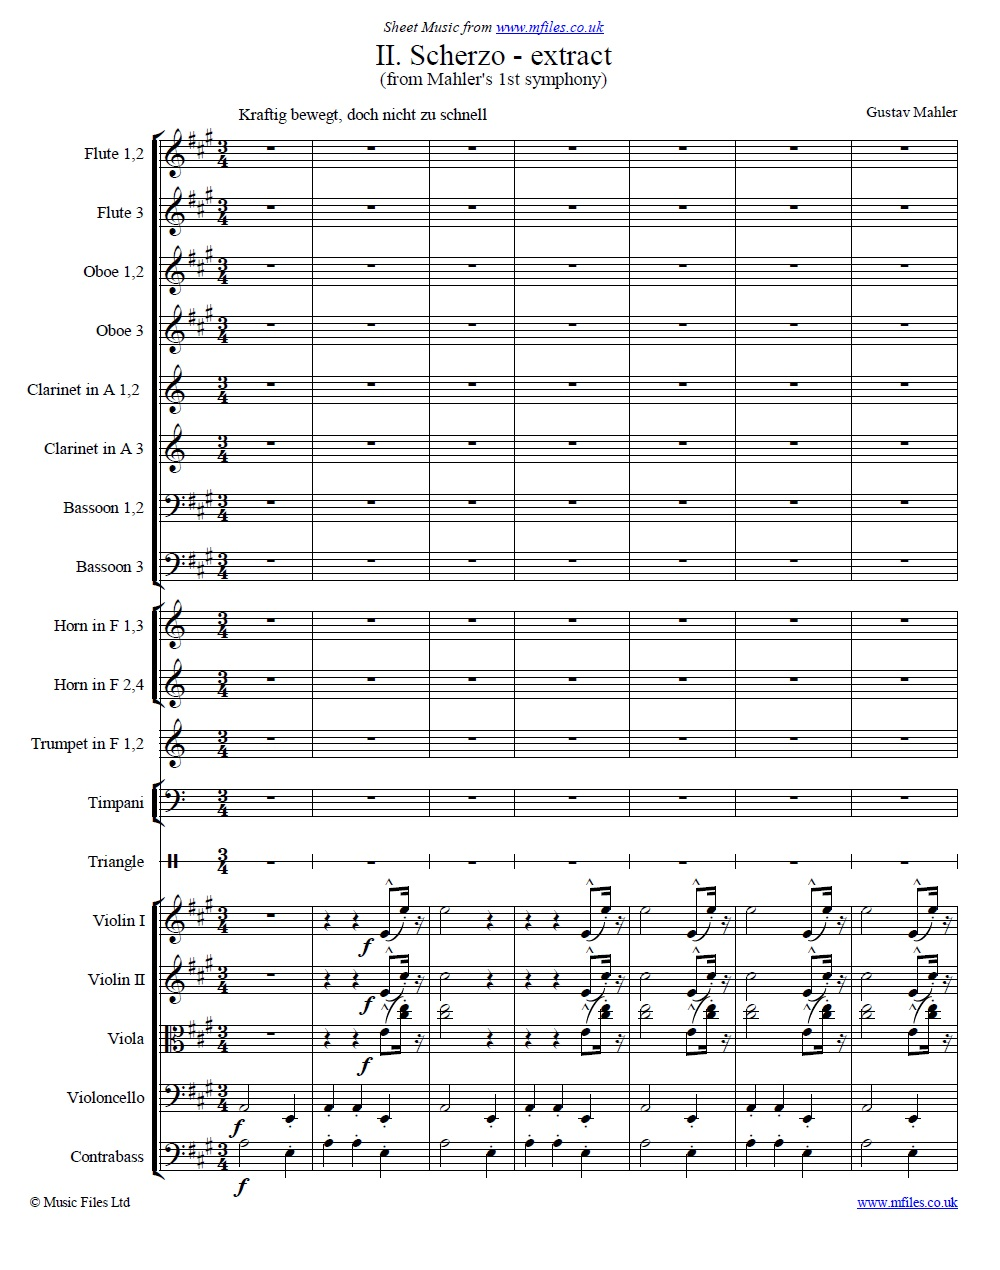 Mahler's 1st Symphony (2nd movement) score extract - sheet music 1st page